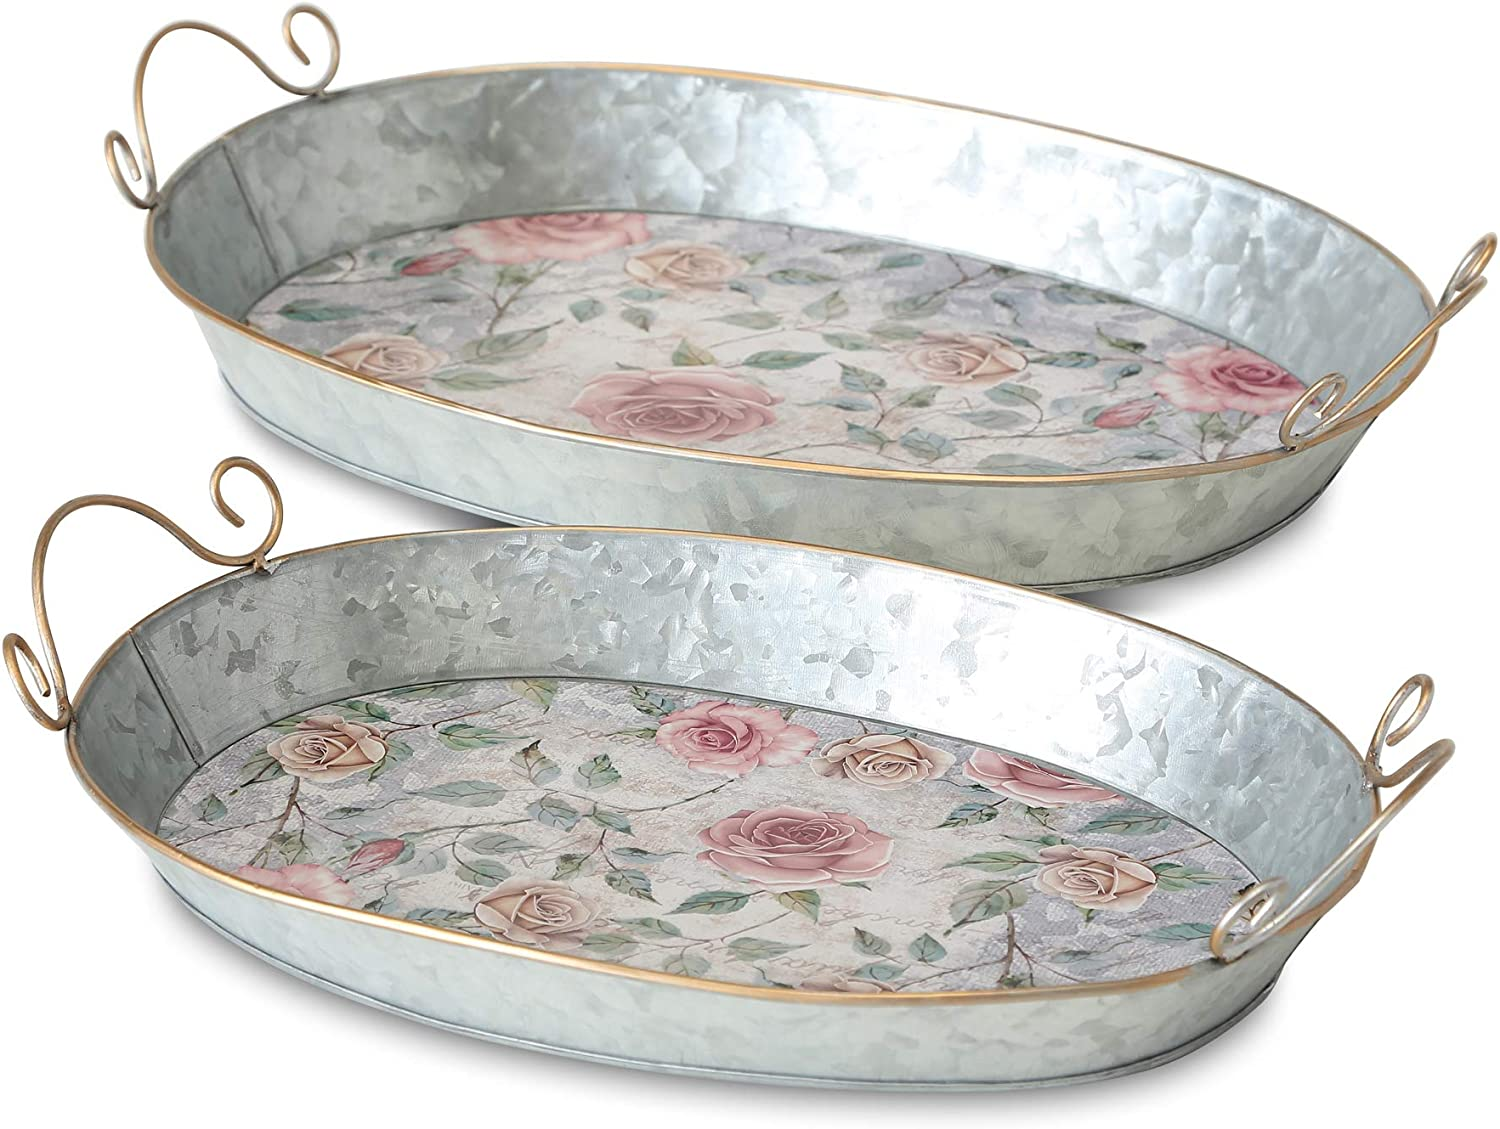 WHW Whole House Worlds 2 Piece Galvanized Oval Trays, Vintage English Rose Garden Pattern, Rolled Rims, Gold Handles, Deep-Dish, 16.5 and 15.25 Inches, Botanical Themed